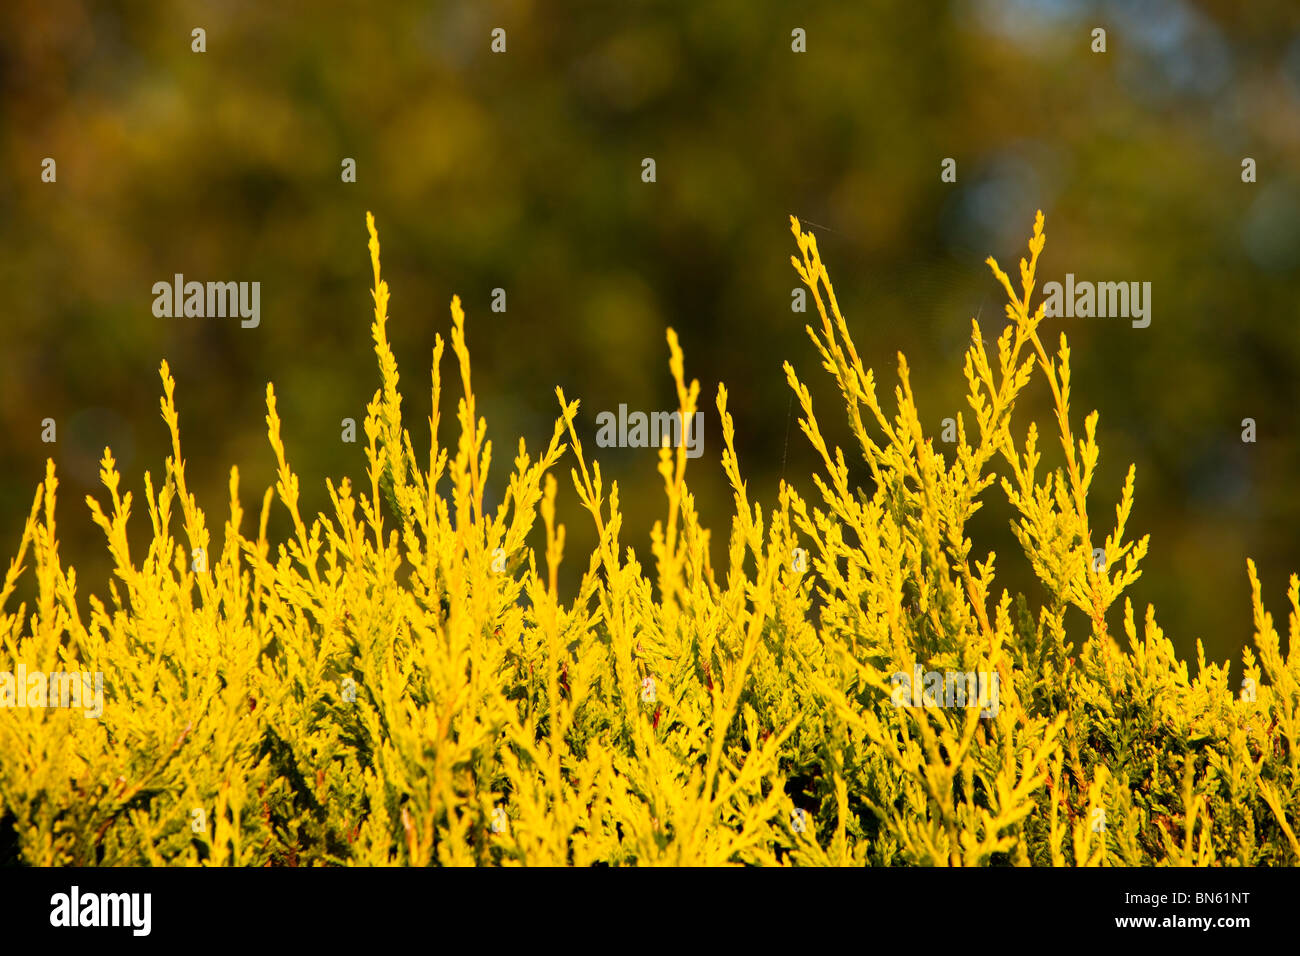 A sprouting conifer hedge. - Stock Image